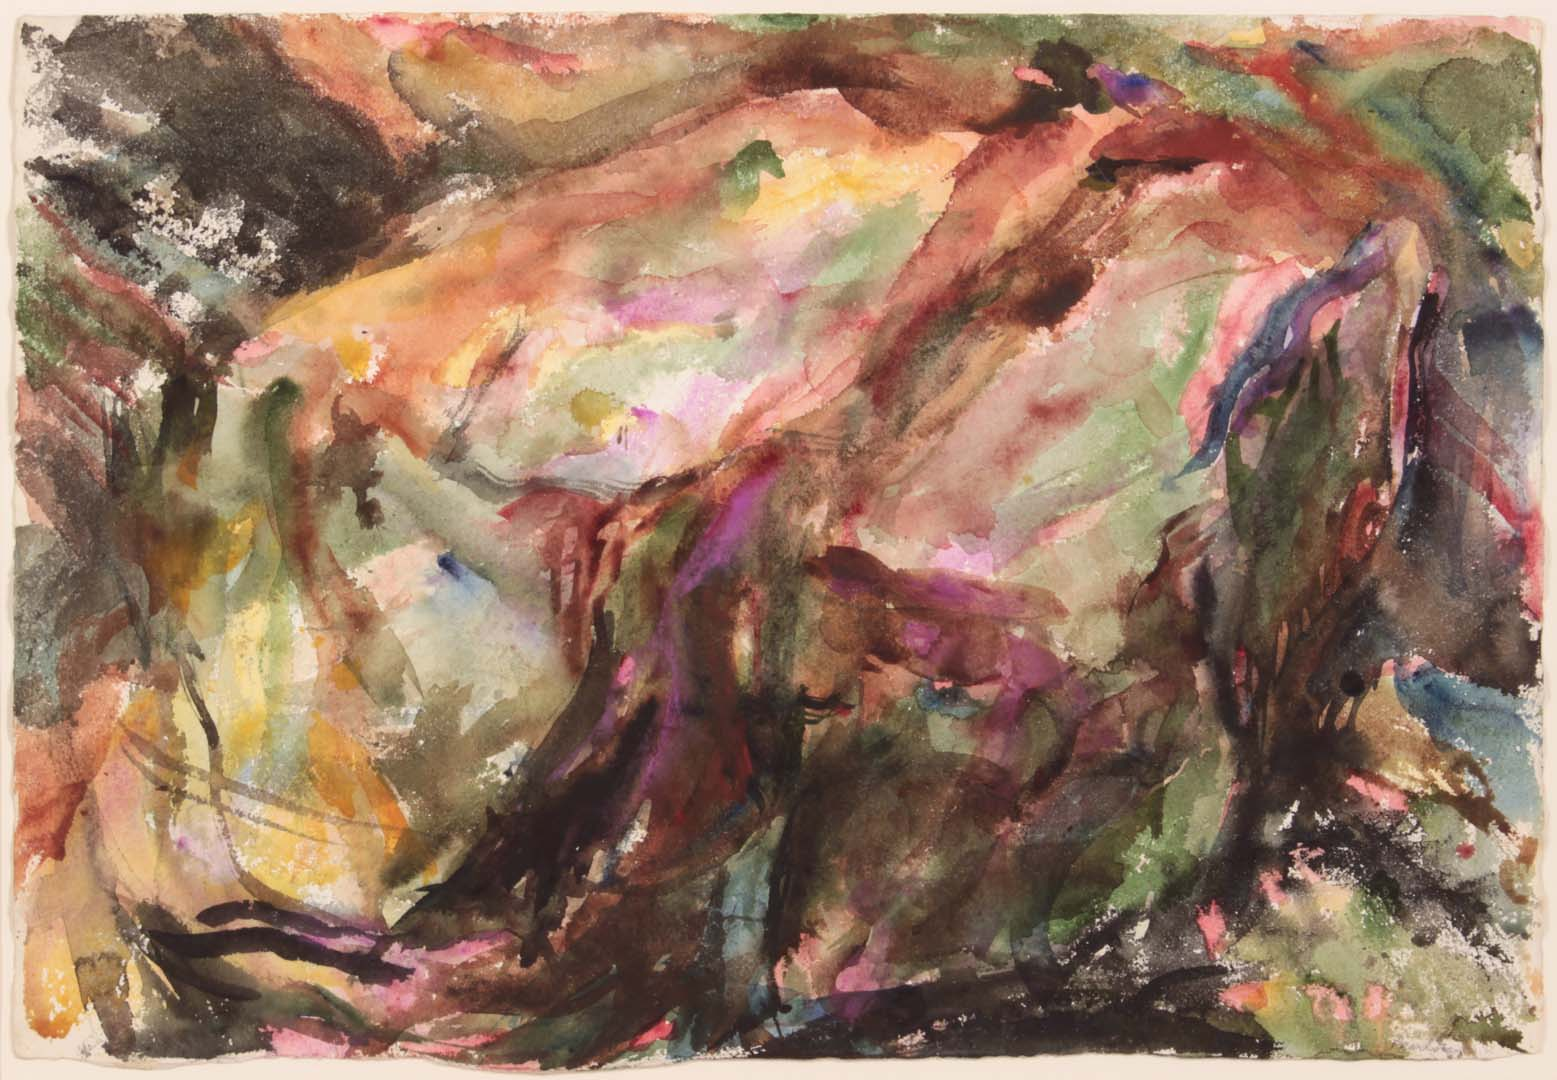 1955 Montauk Rocks #5 Watercolor on Paper 15.125 x 22